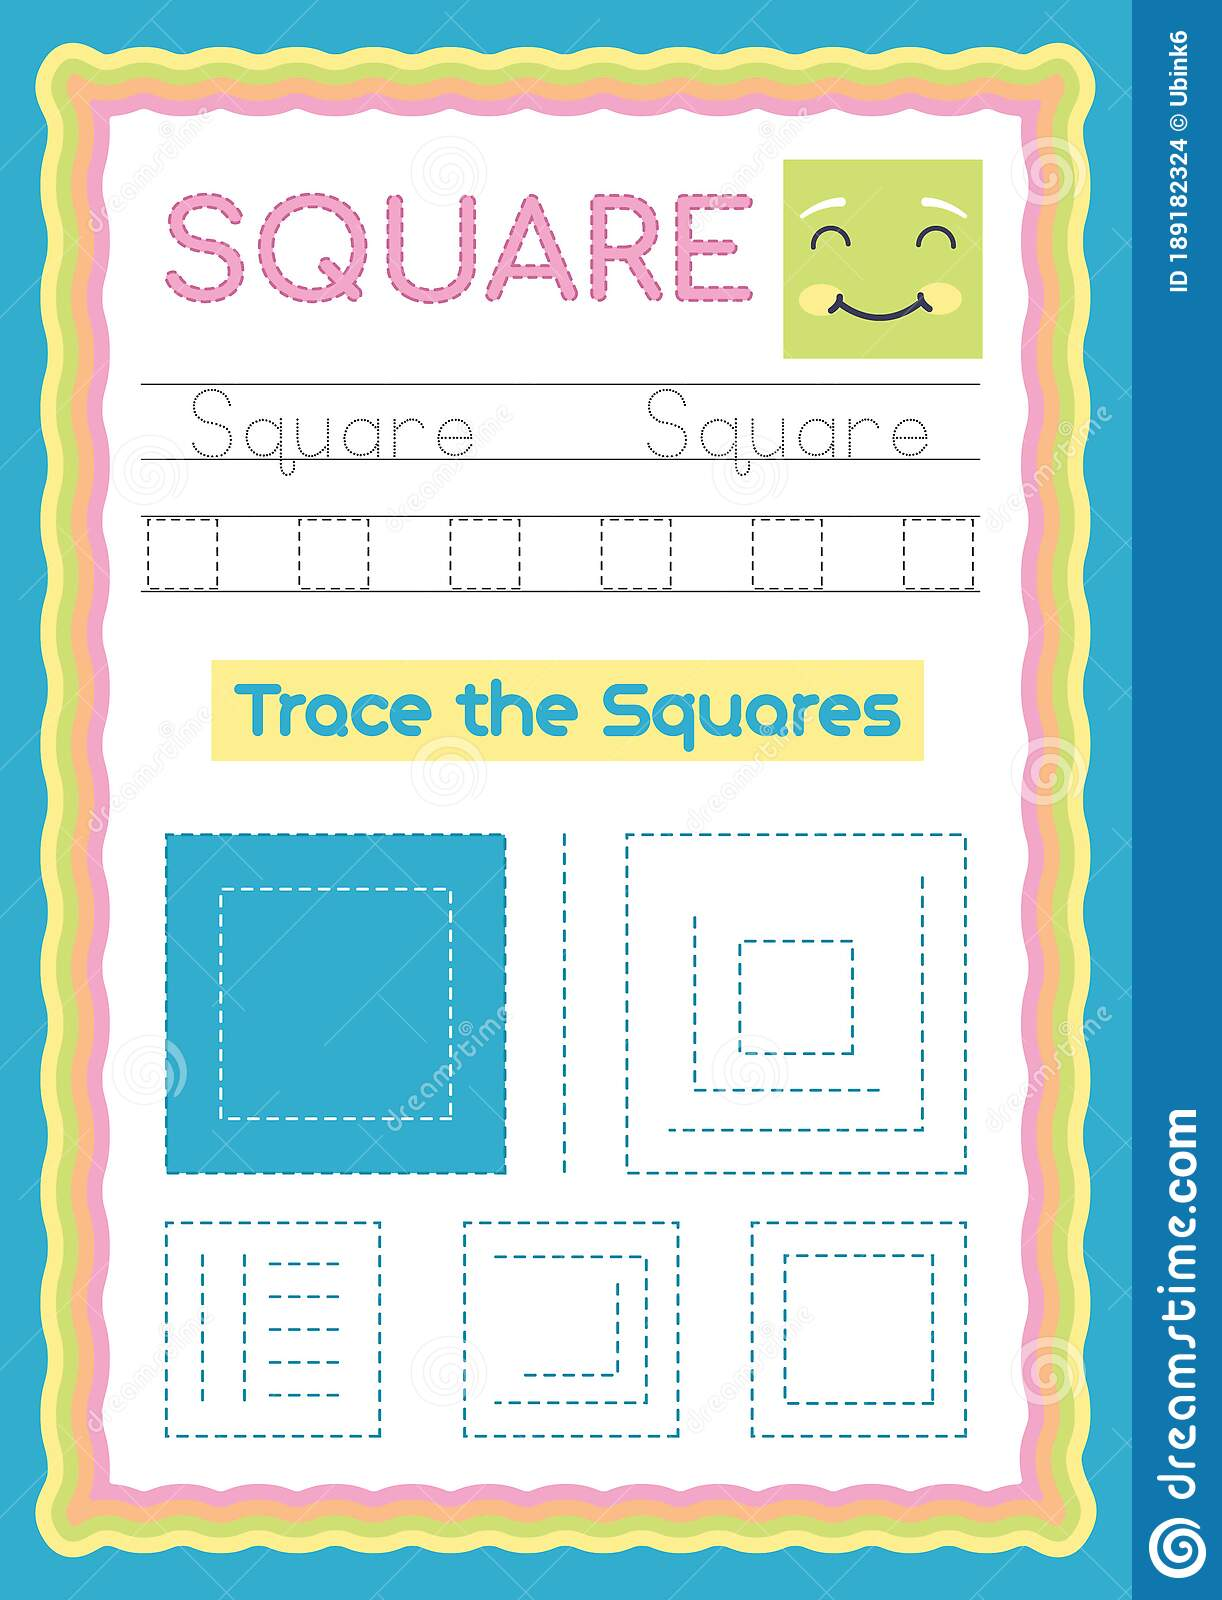 Preschool Colorful Square Shape Tracing And Writing Daily